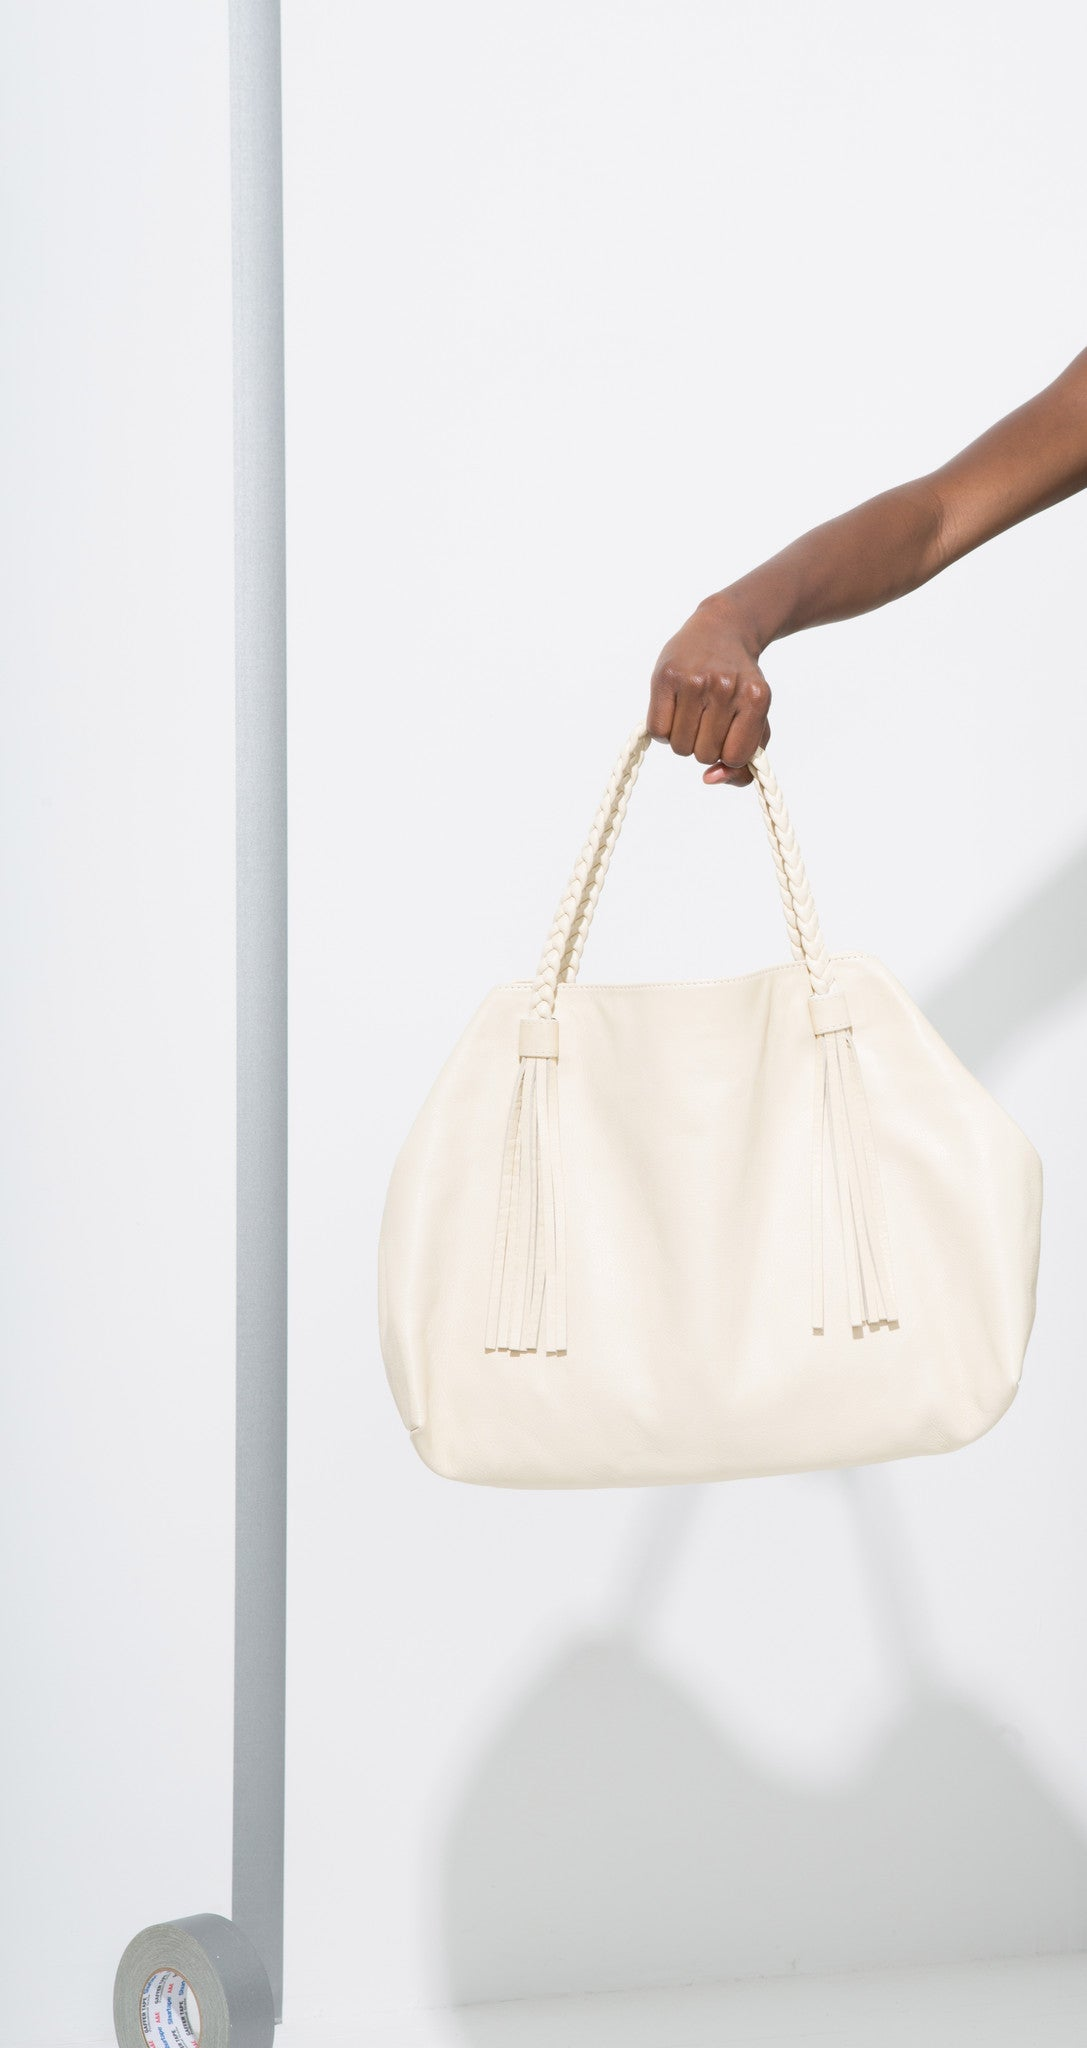 Tote Bag is a cream tote with braided straps and tassel features designed by Moses Nadel.